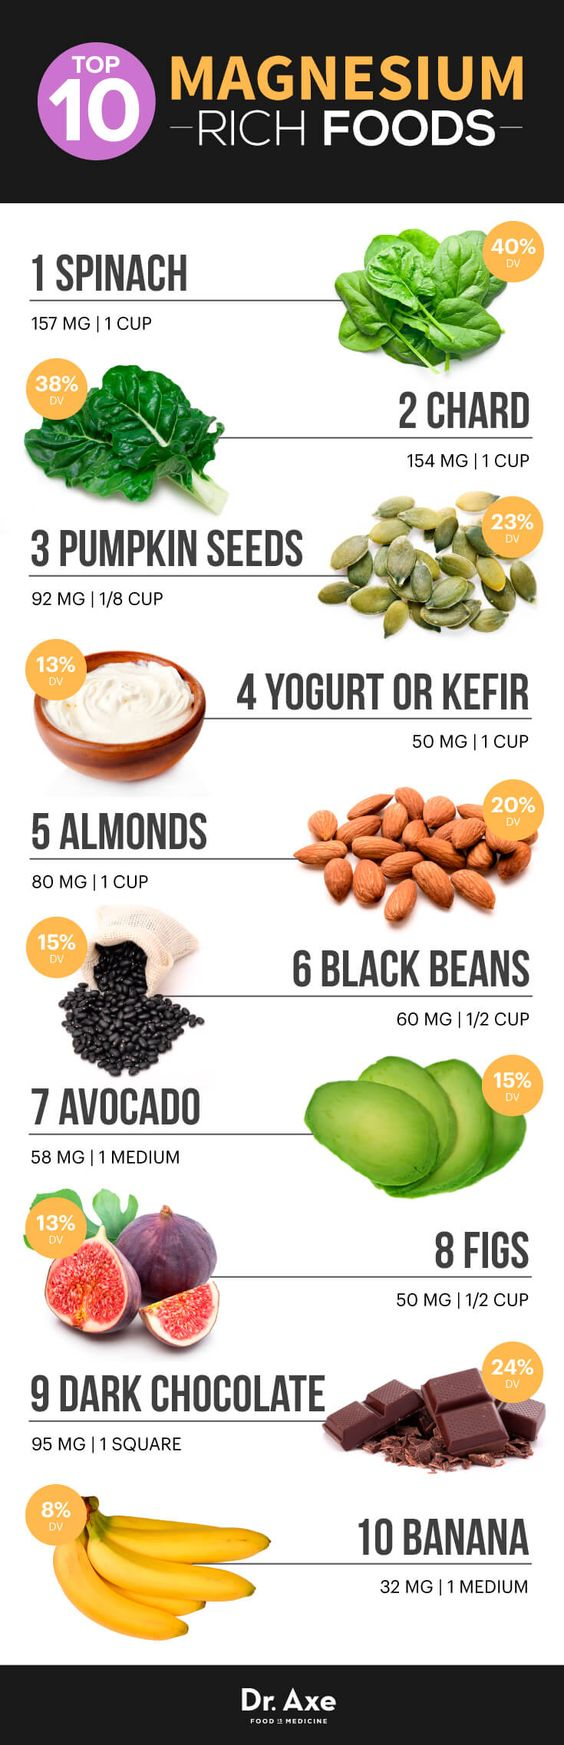 Top 10 Magnesium Foods Infographic Chart: